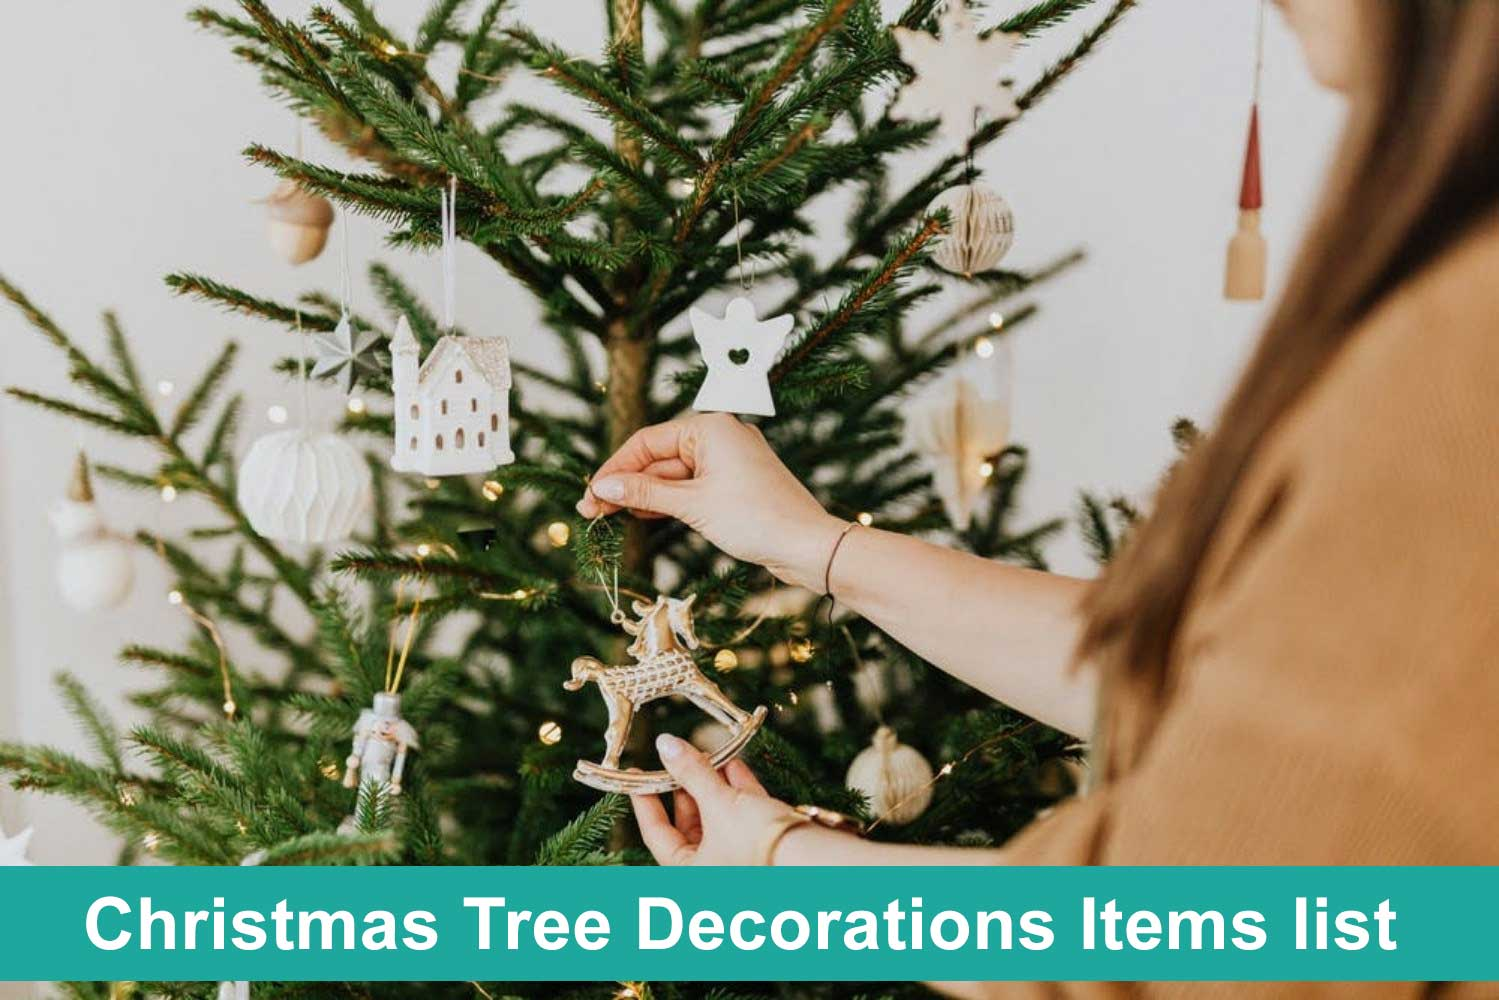 Christmas Tree Decorations Items list for this Season Online Shopping